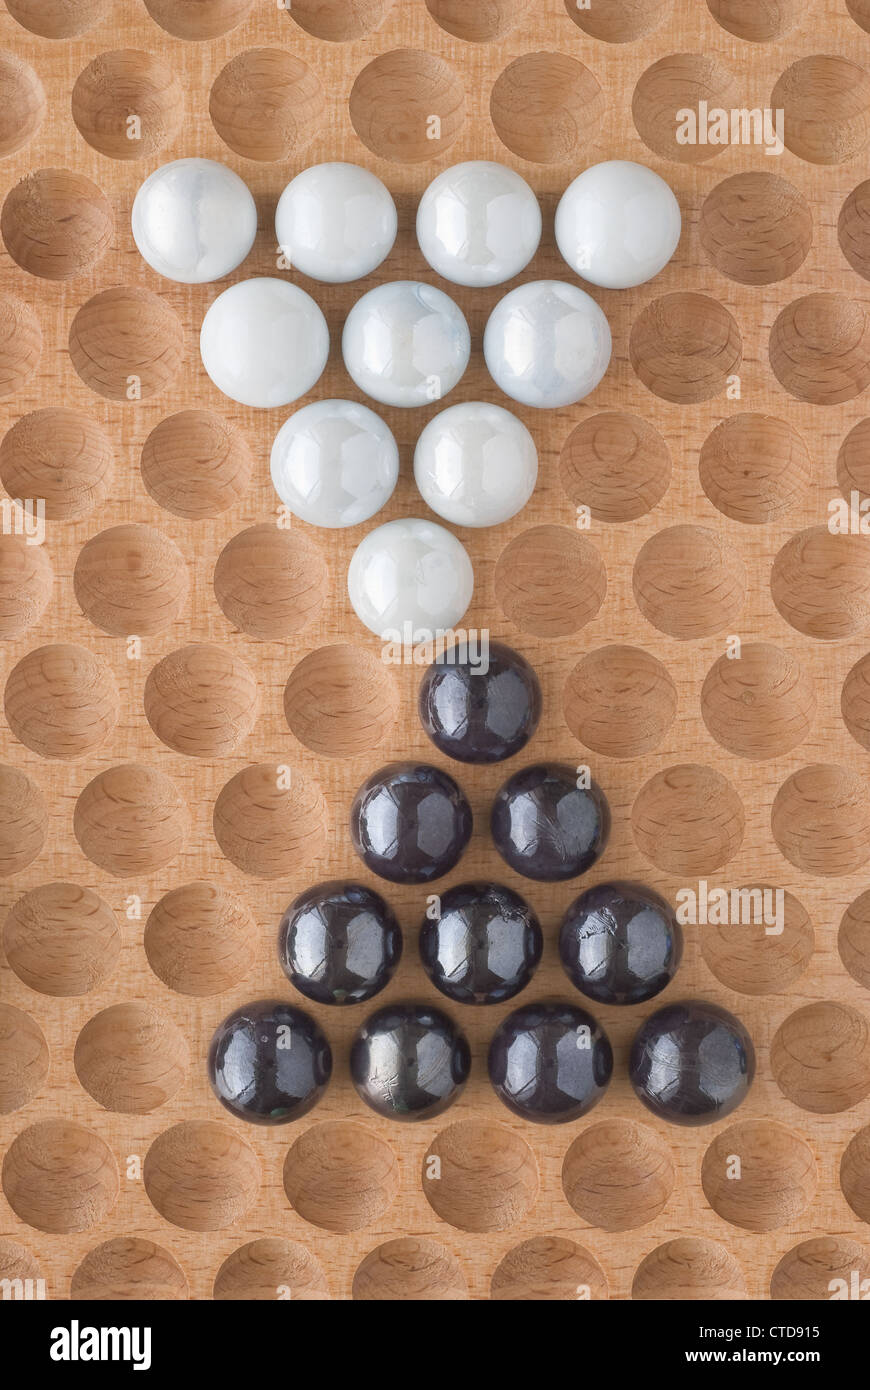 Two sets of Marbles as Design Elements - Stock Image